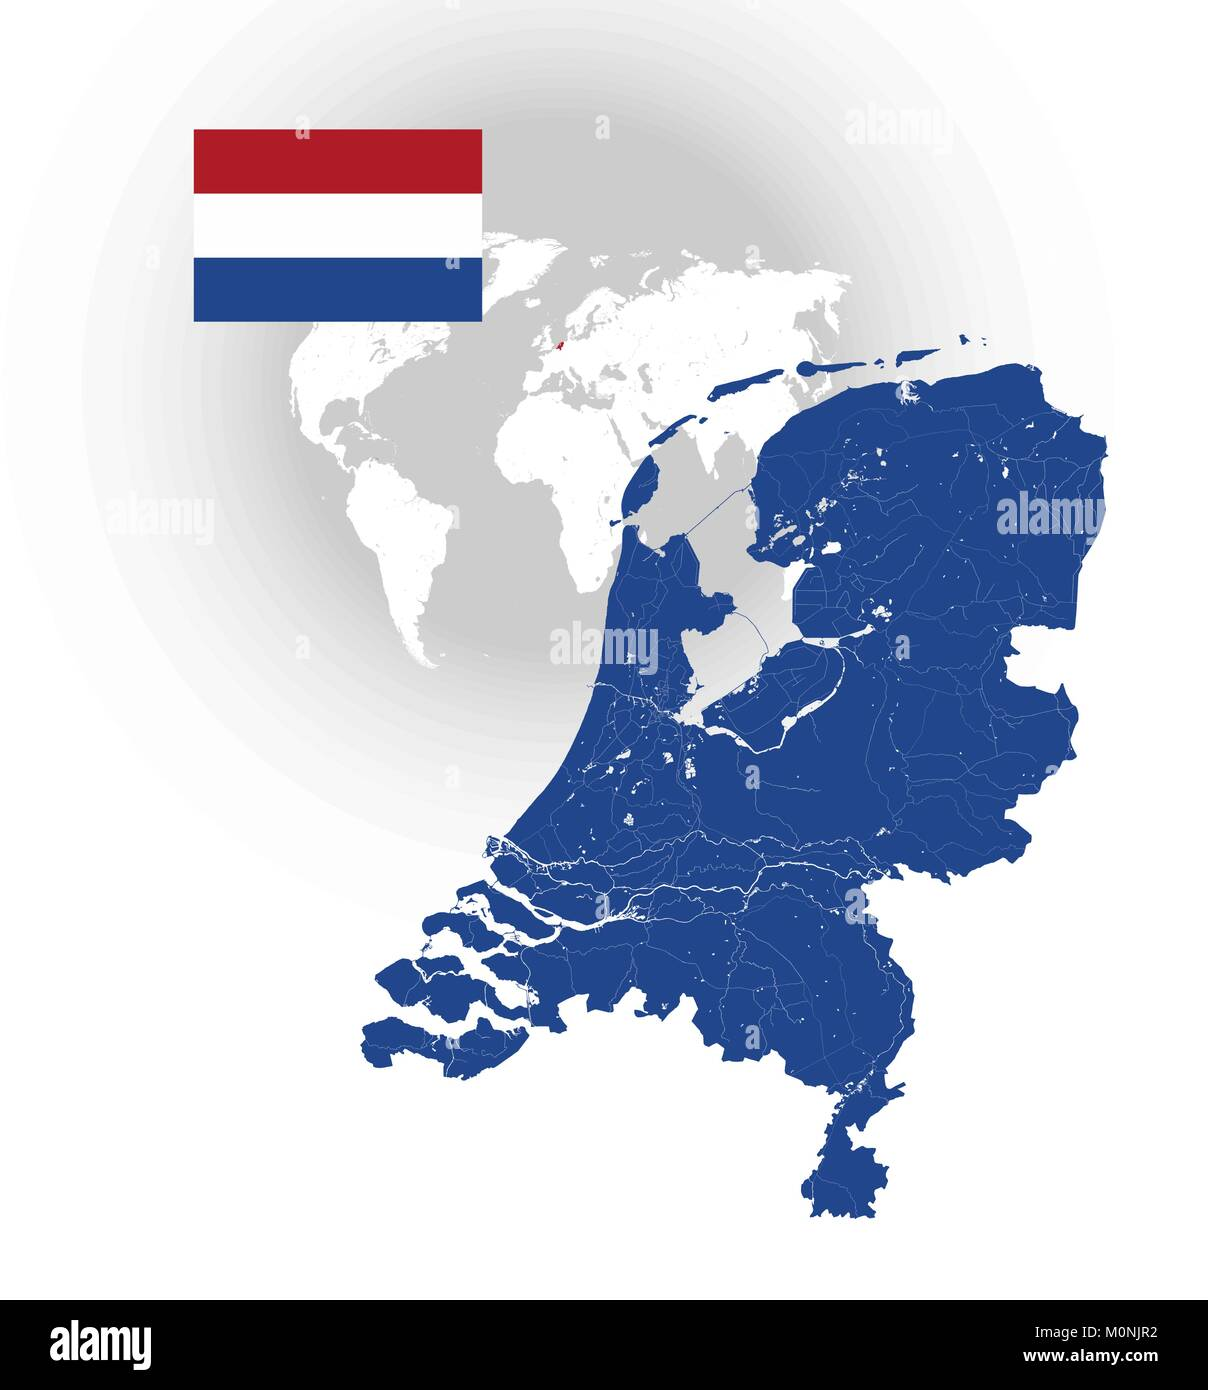 Map of netherlands with rivers and lakes national flag of stock map of netherlands with rivers and lakes national flag of netherlands and world map as background please look at my other images of cartographic ser gumiabroncs Images